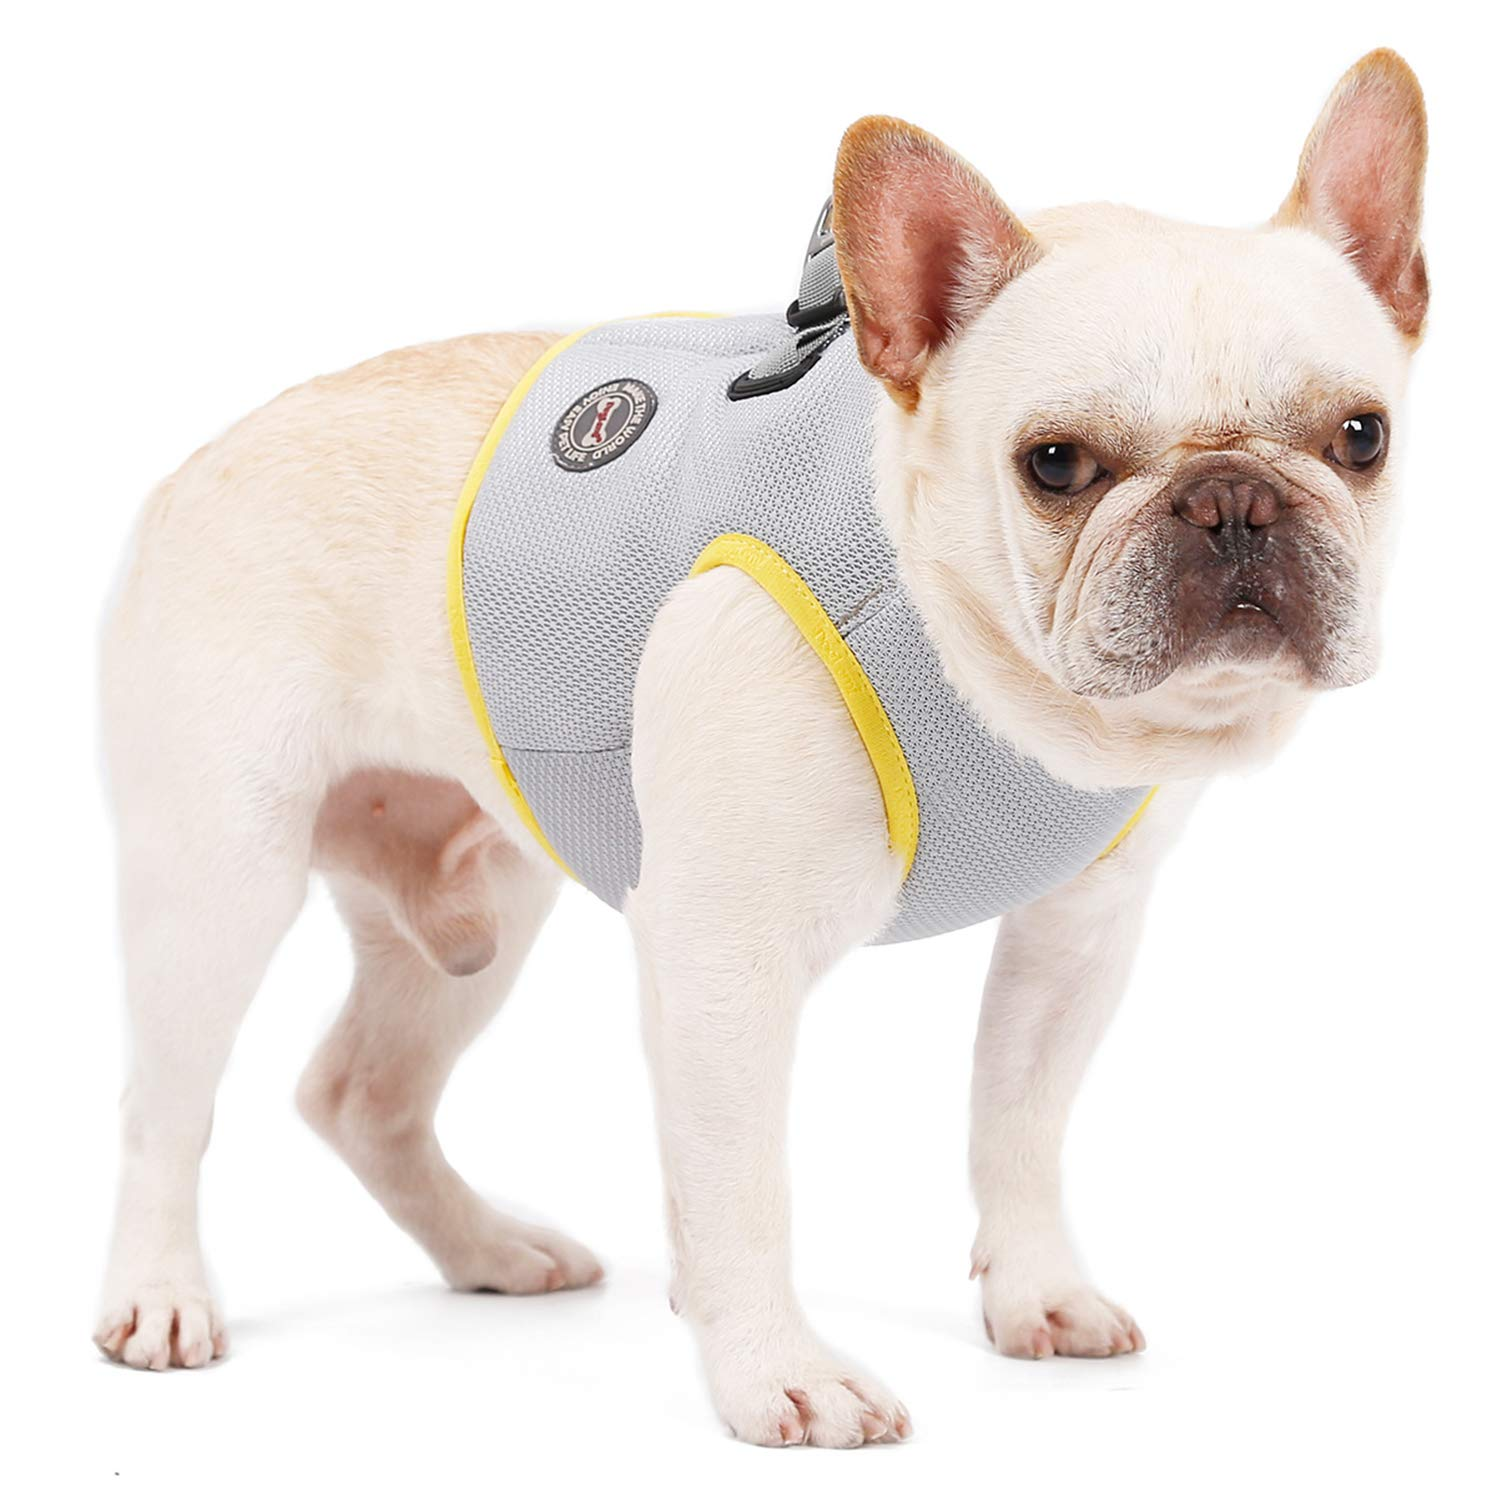 CONTACTS Dog Cooling Vest Harness Outdoor Breathable Pet Cooling Coat Sun-Proof Dog Jacket, Suitable for Medium and Large Dogs, 2X-Large by CONTACTS